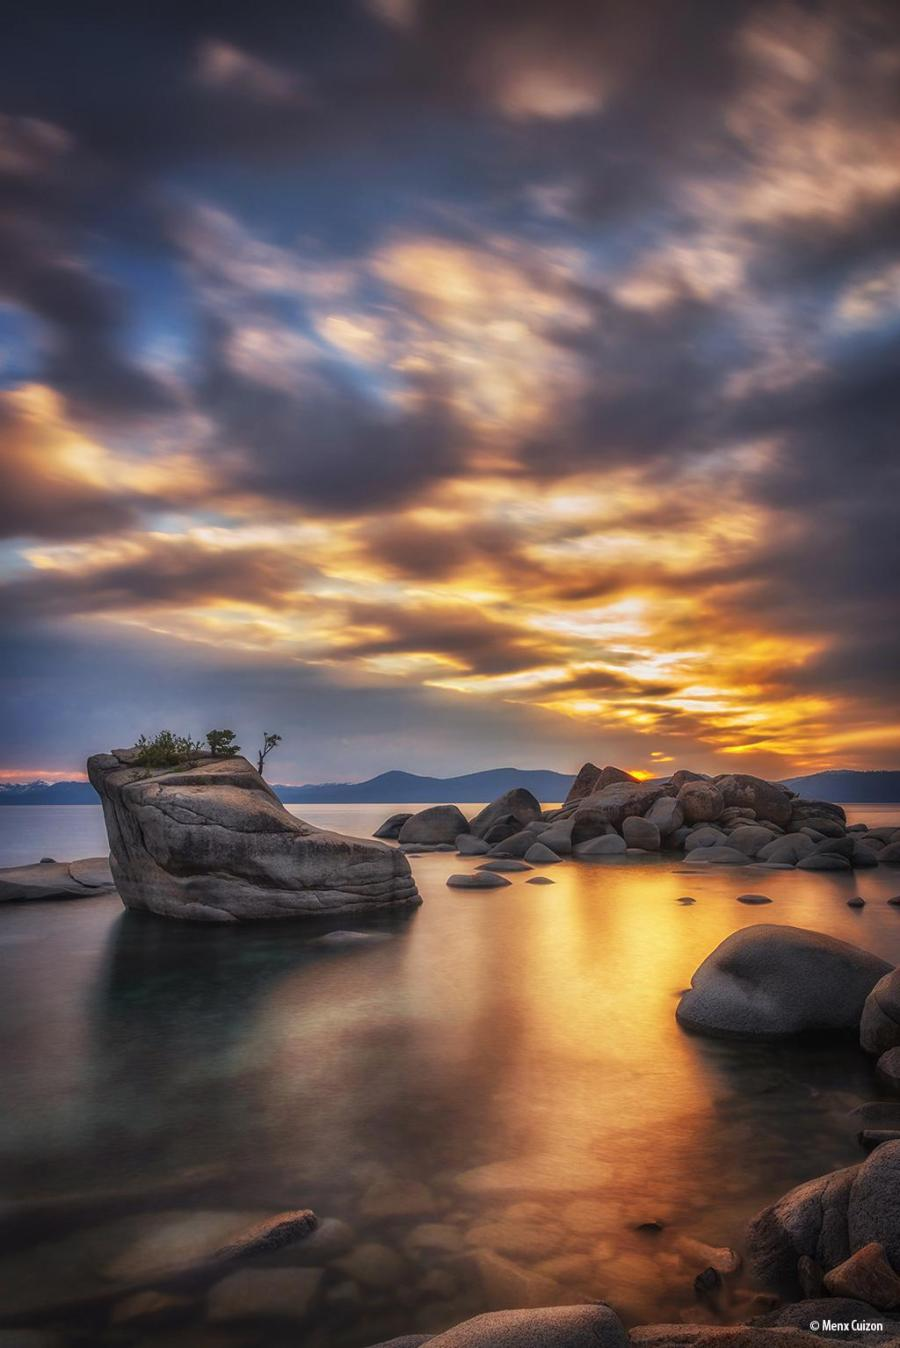 """Today's Photo Of The Day is """"Miniature"""" by Menx Cuizon. Location: Bonsai Rock, Lake Tahoe, Nevada."""